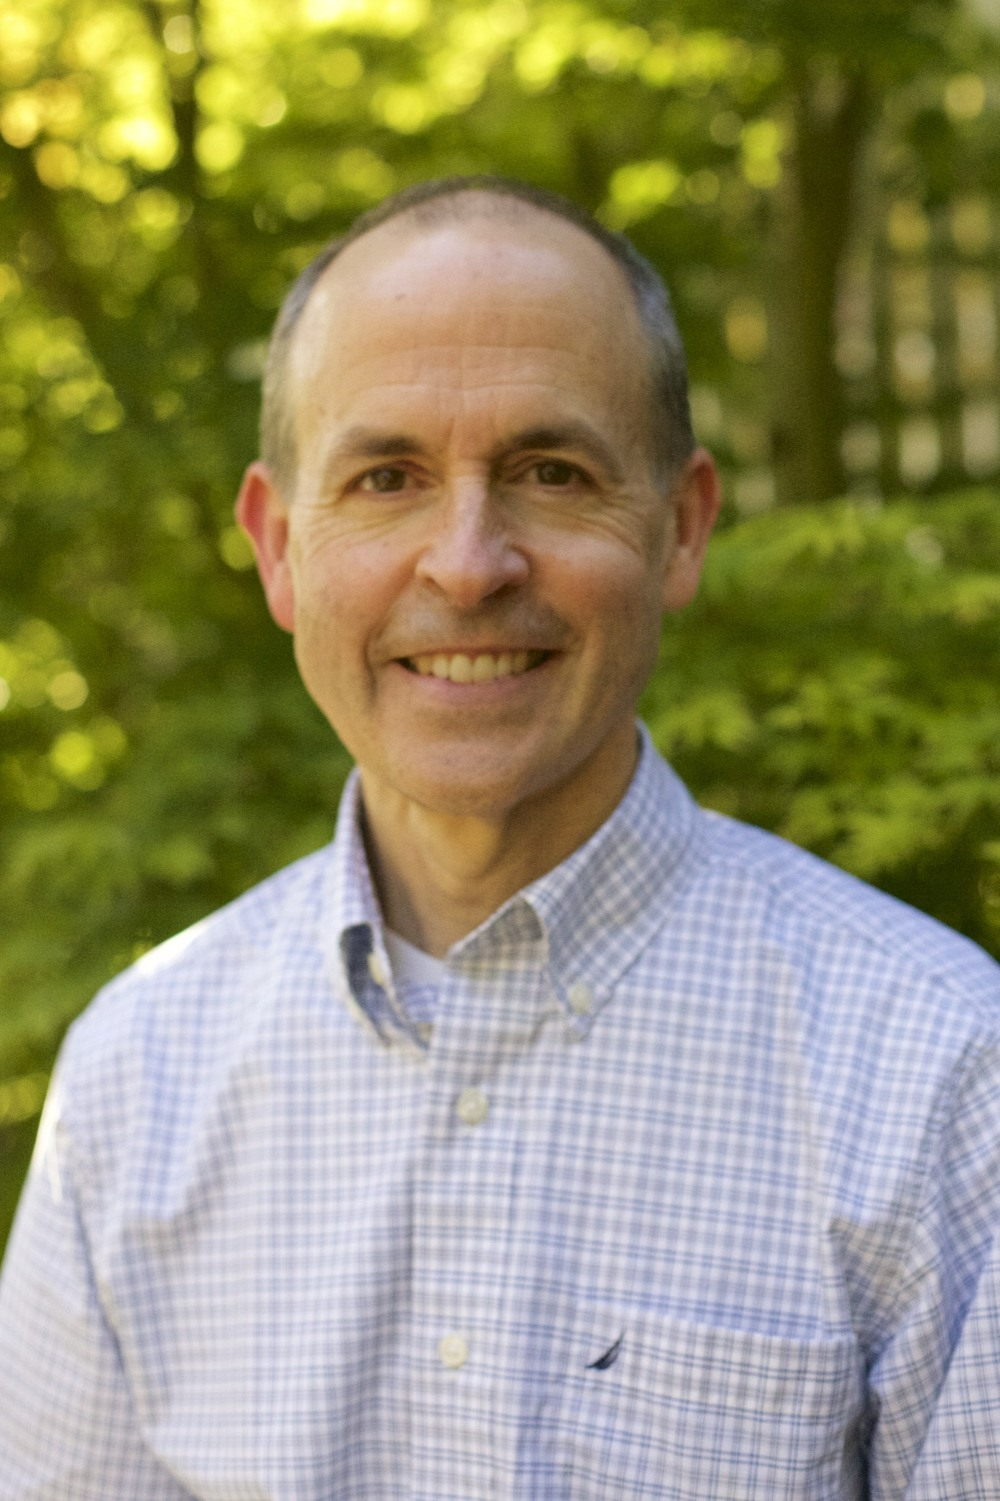 Bob viola, ma, lmhc, therapist    ∙ Adolescents & Adults   ∙  Dual Diagnosis  ∙  Bipolar  ∙  Shizophrenia  ∙  Relationship Issues  ∙  Parenting  ∙  Anxiety  ∙  Depression  ∙  DBT  ∙ M indfulness  ∙  Trauma